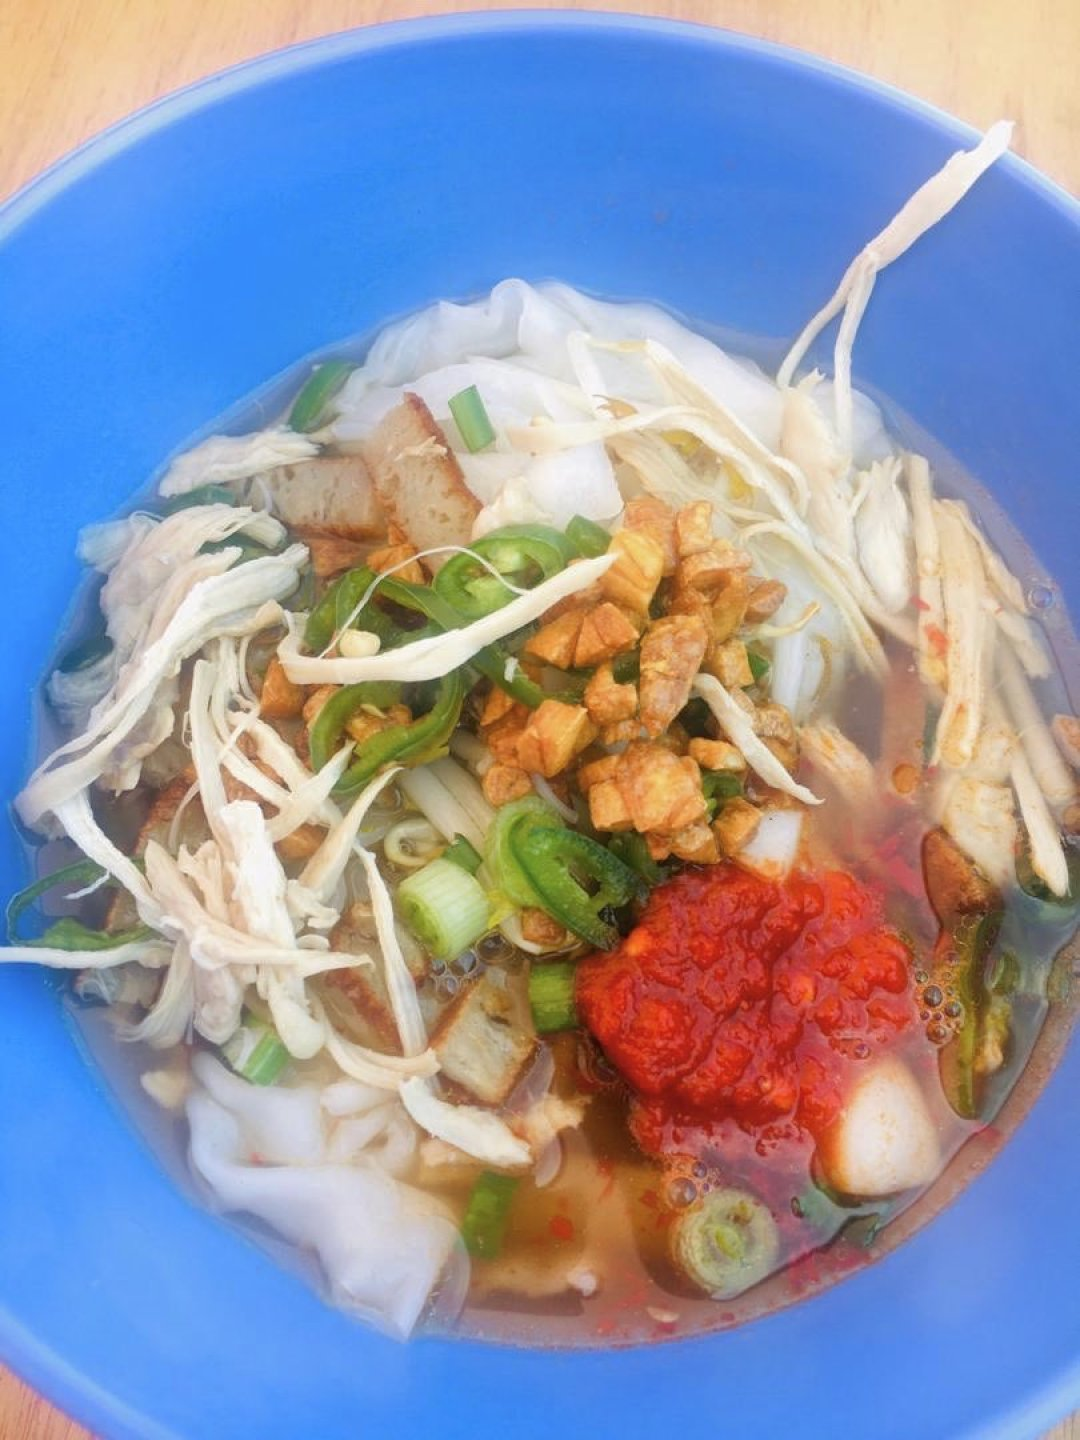 koey teow t'hng